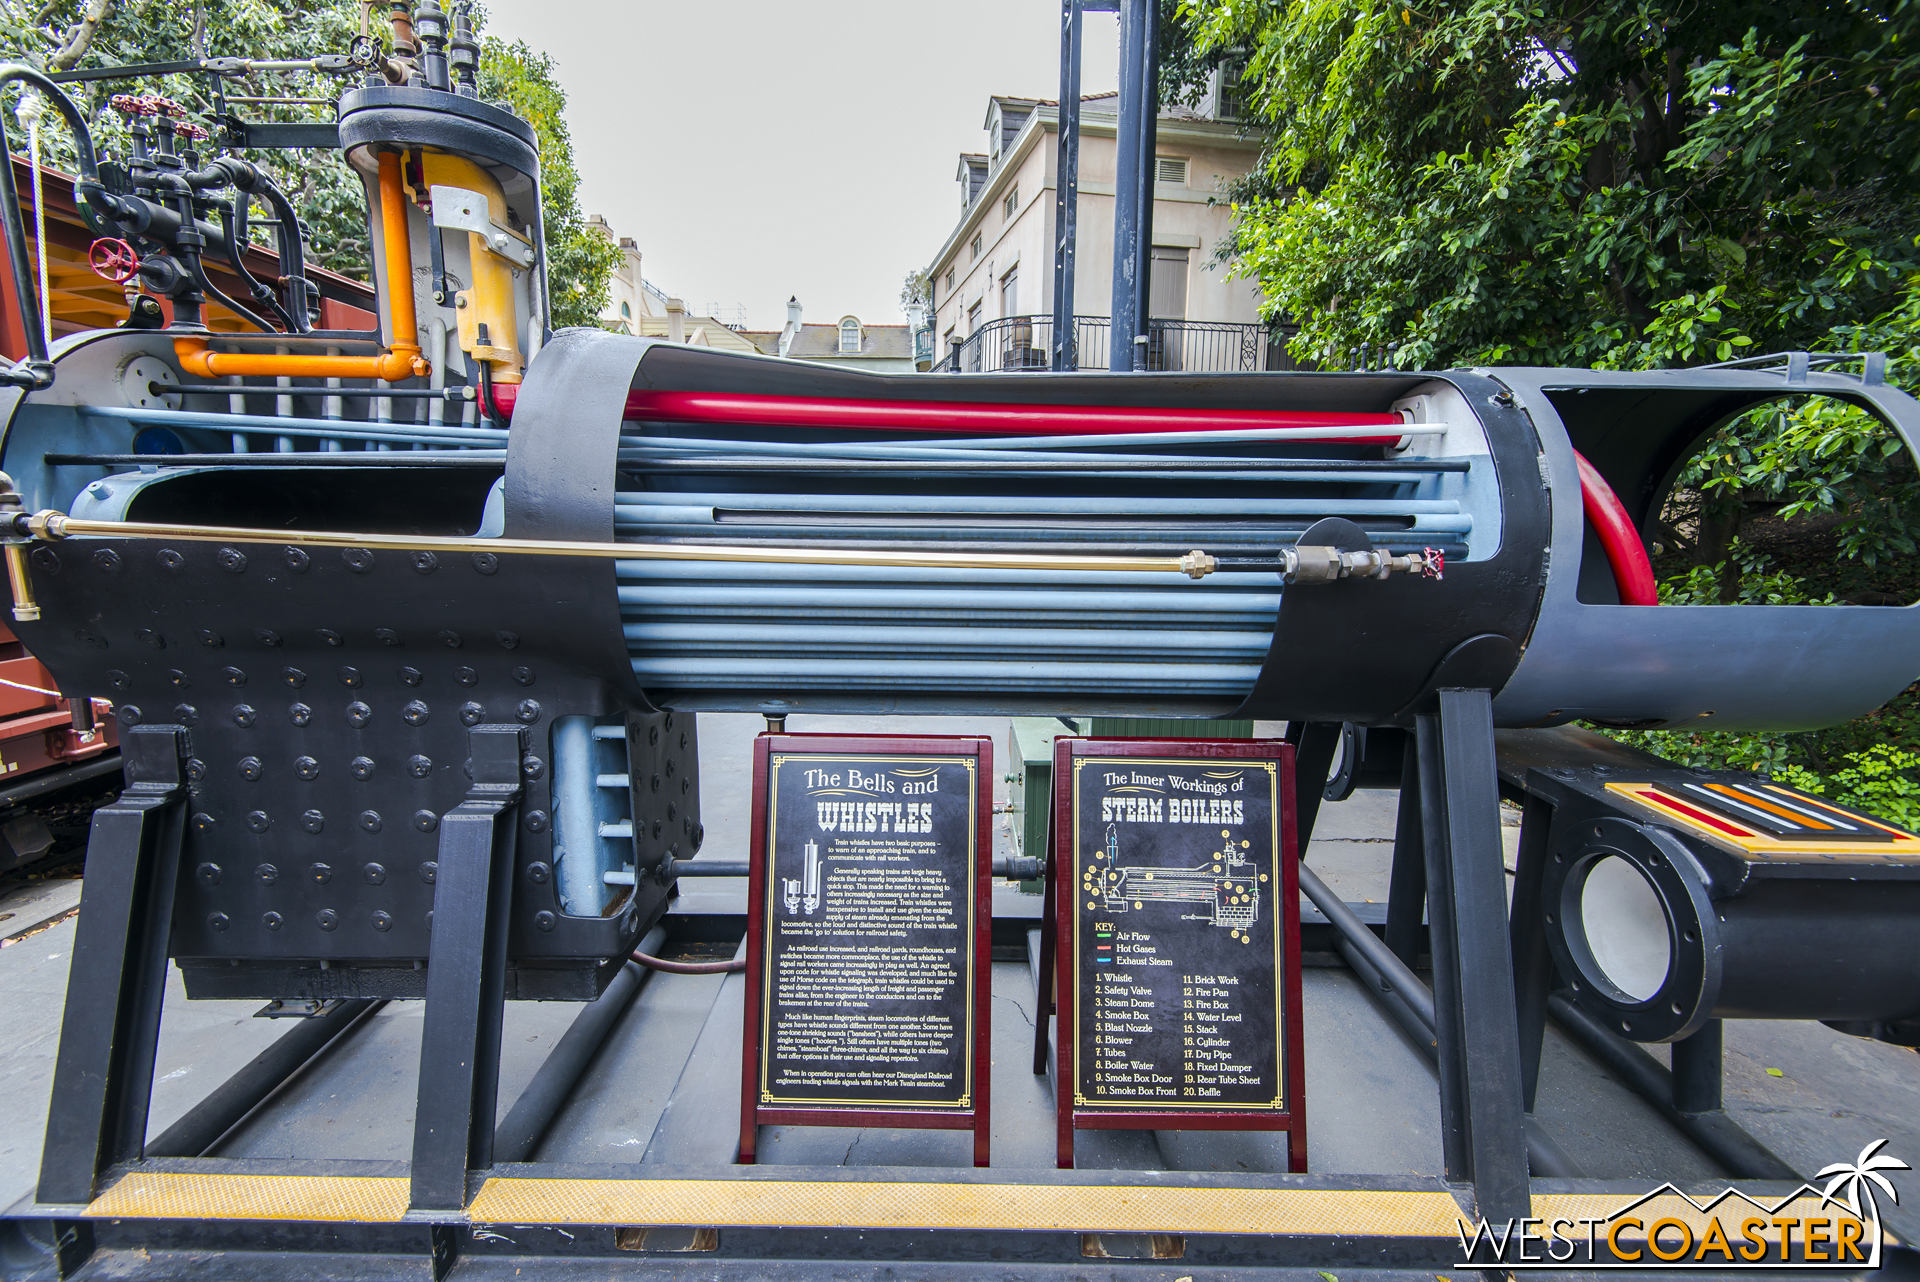 This exhibit explains how steam power works.